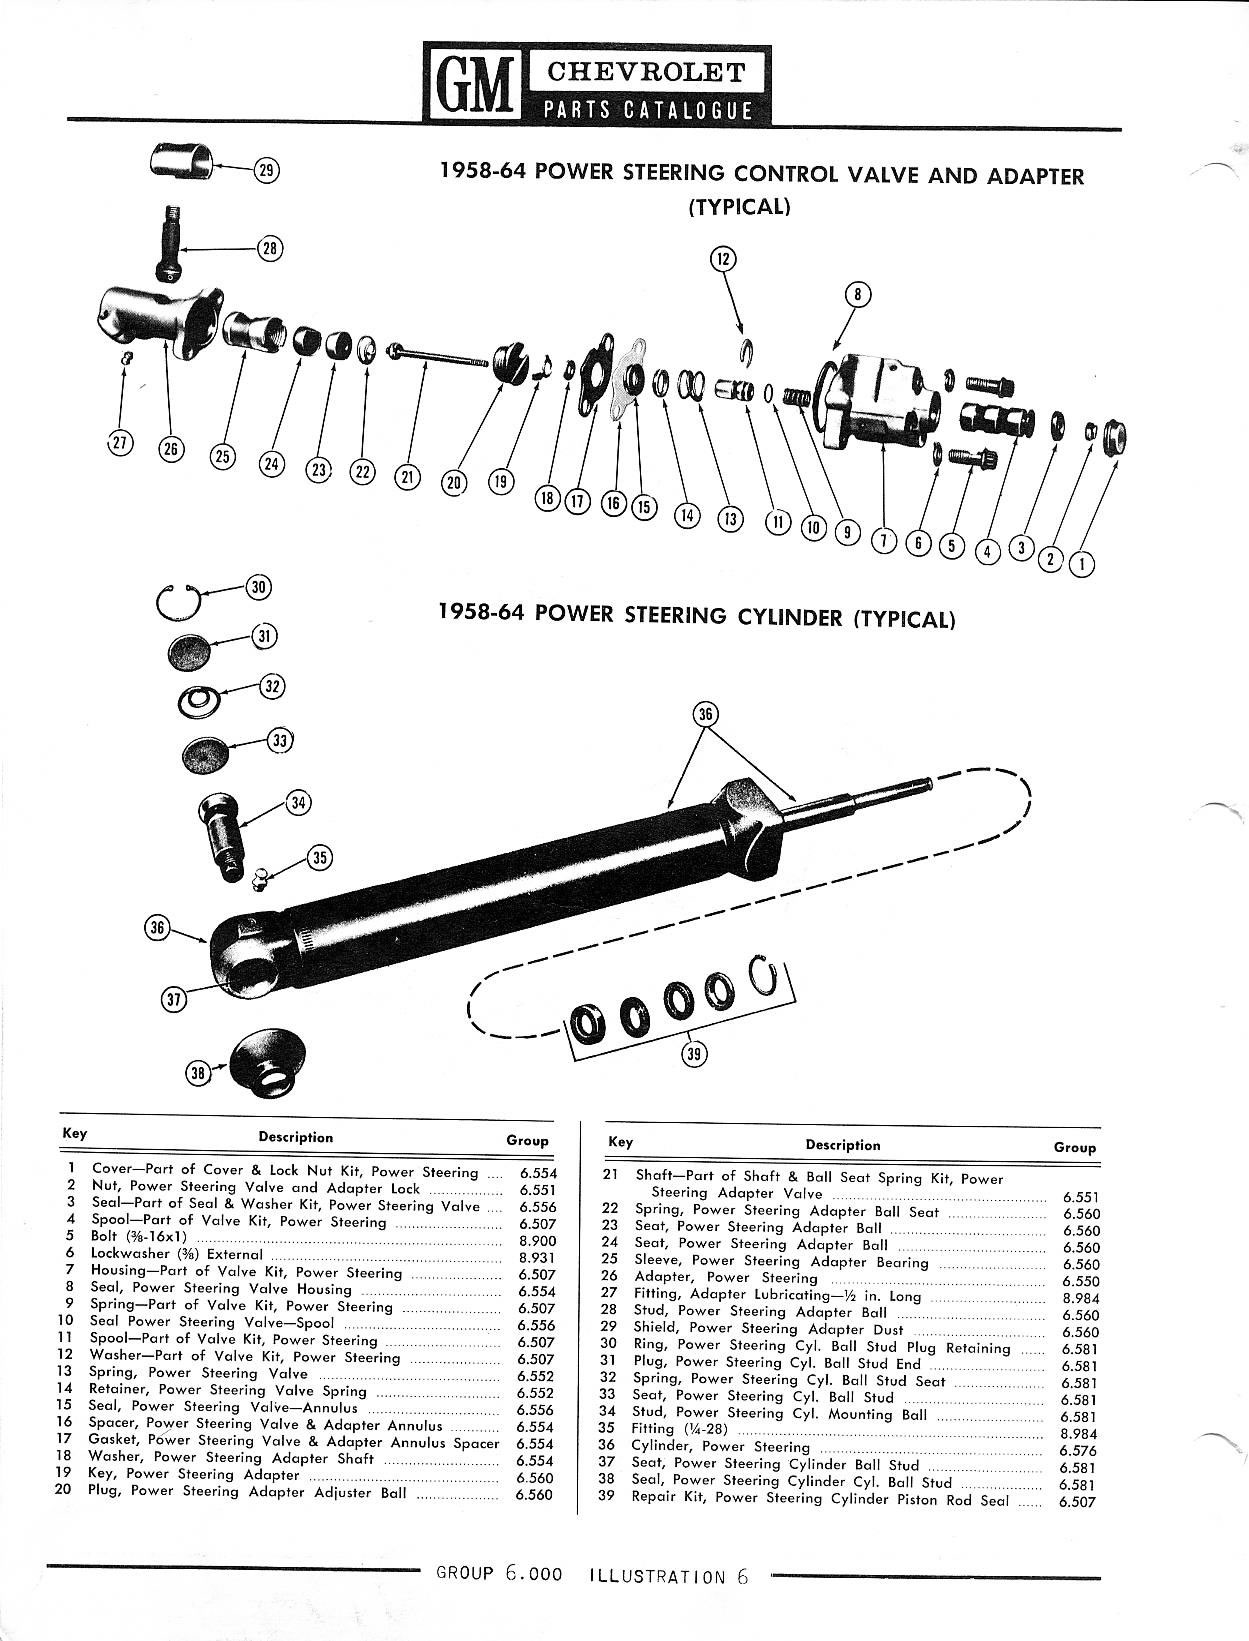 1964 Impala Steering Diagram - Wiring Diagram •